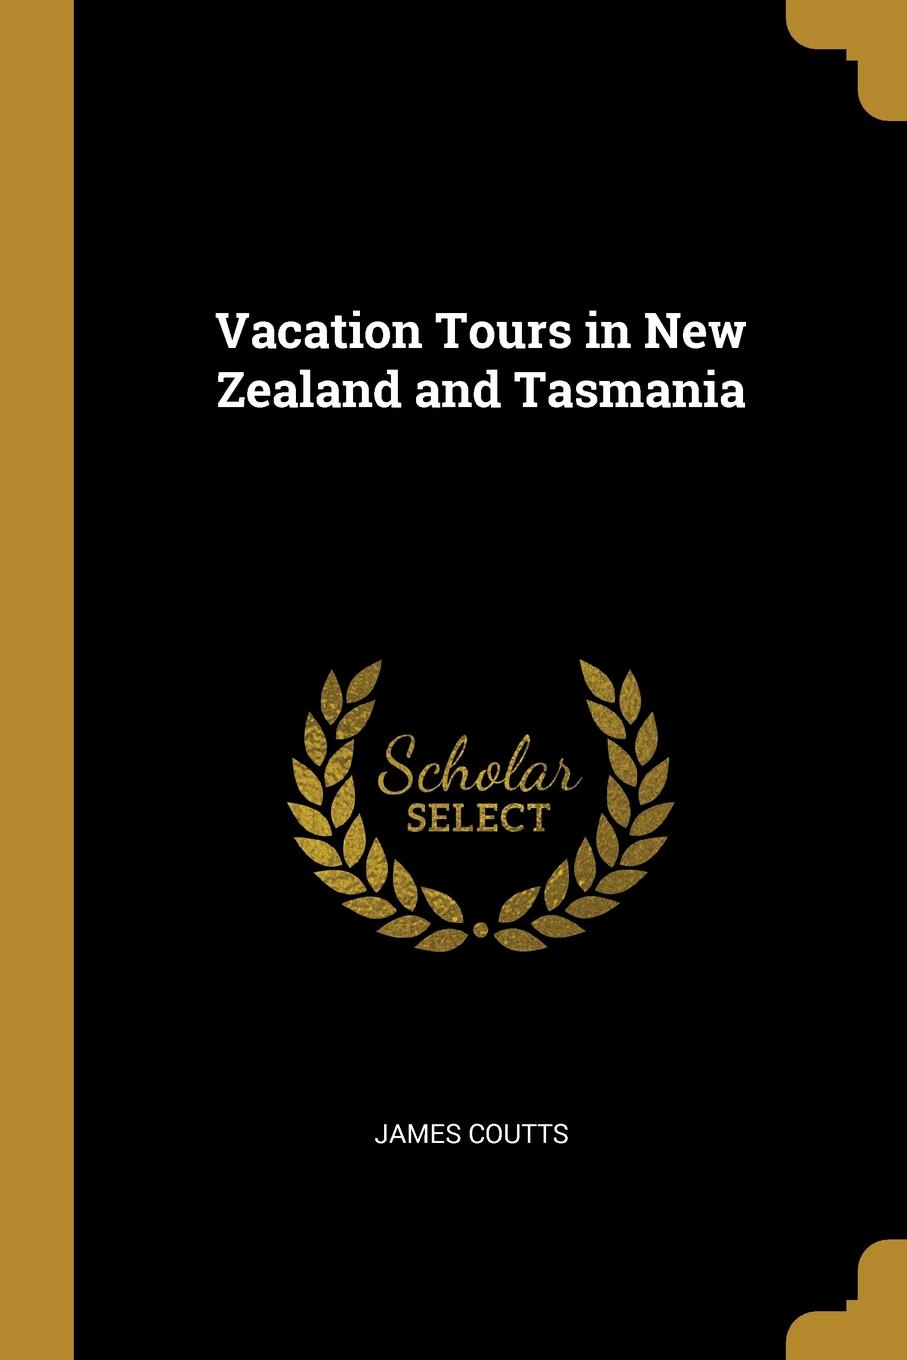 James Coutts Vacation Tours in New Zealand and Tasmania